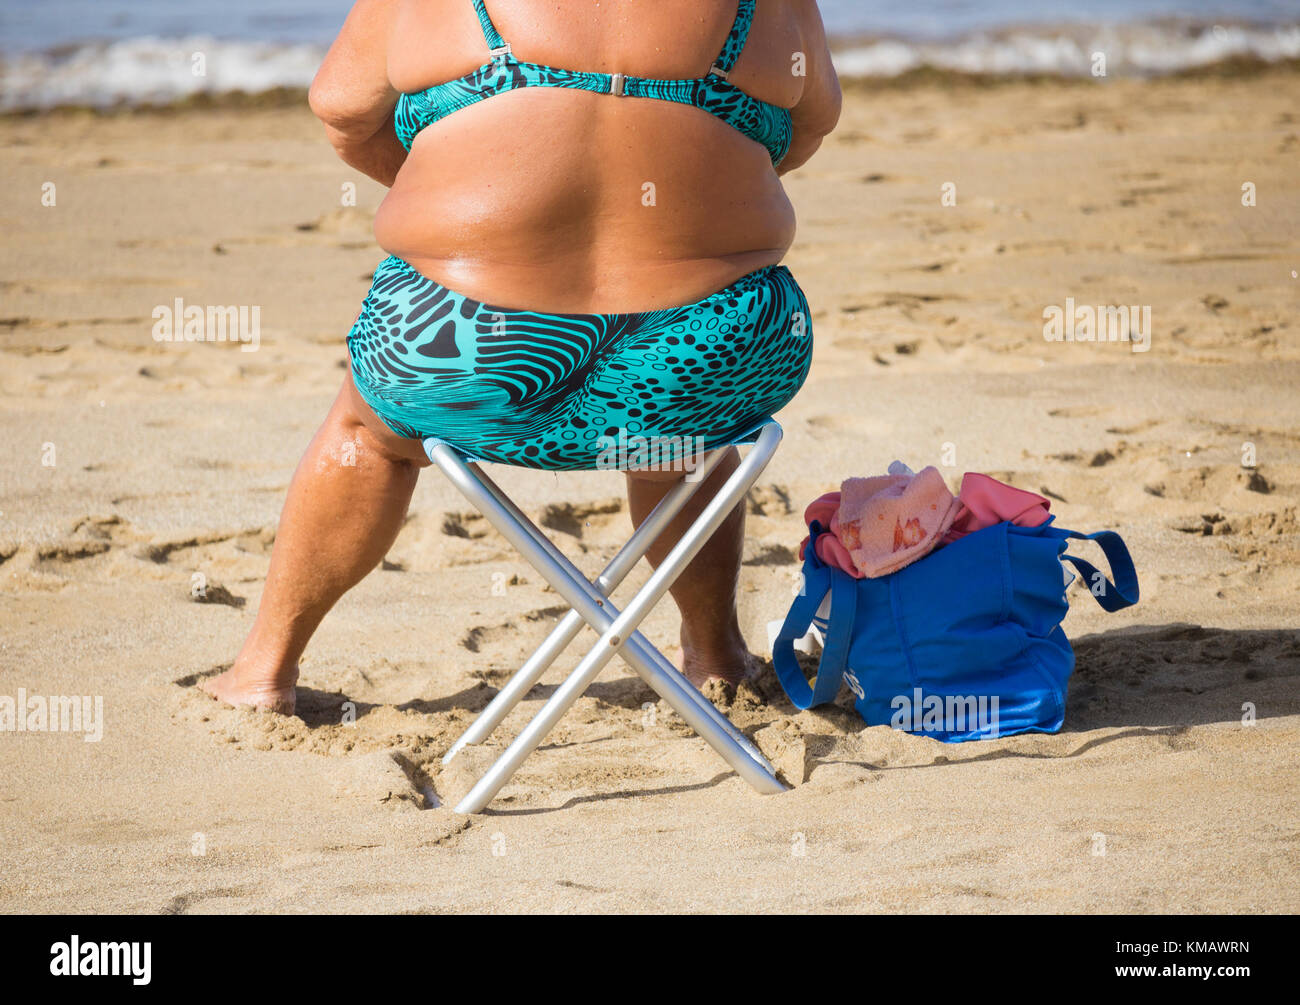 obese woman sunbathing beach stockfotos obese woman sunbathing beach bilder alamy. Black Bedroom Furniture Sets. Home Design Ideas